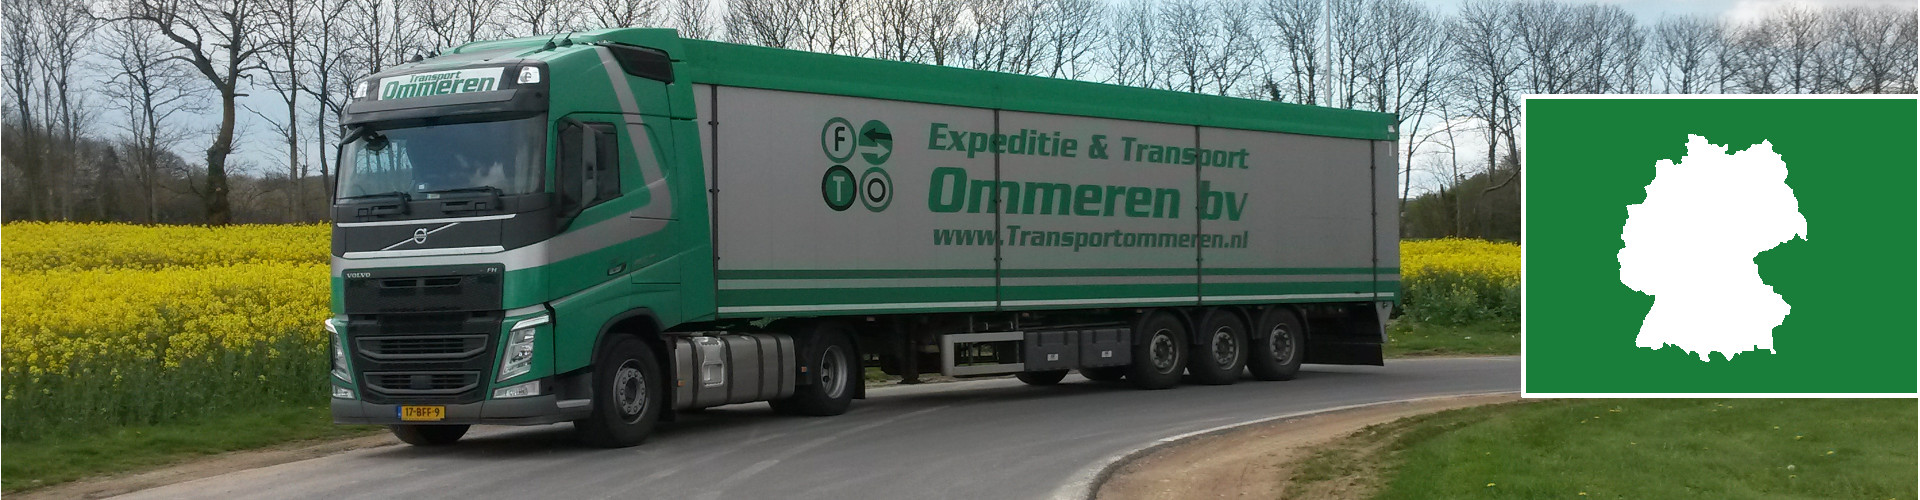 Walkingfloor Transport Duitsland - Transport Ommeren